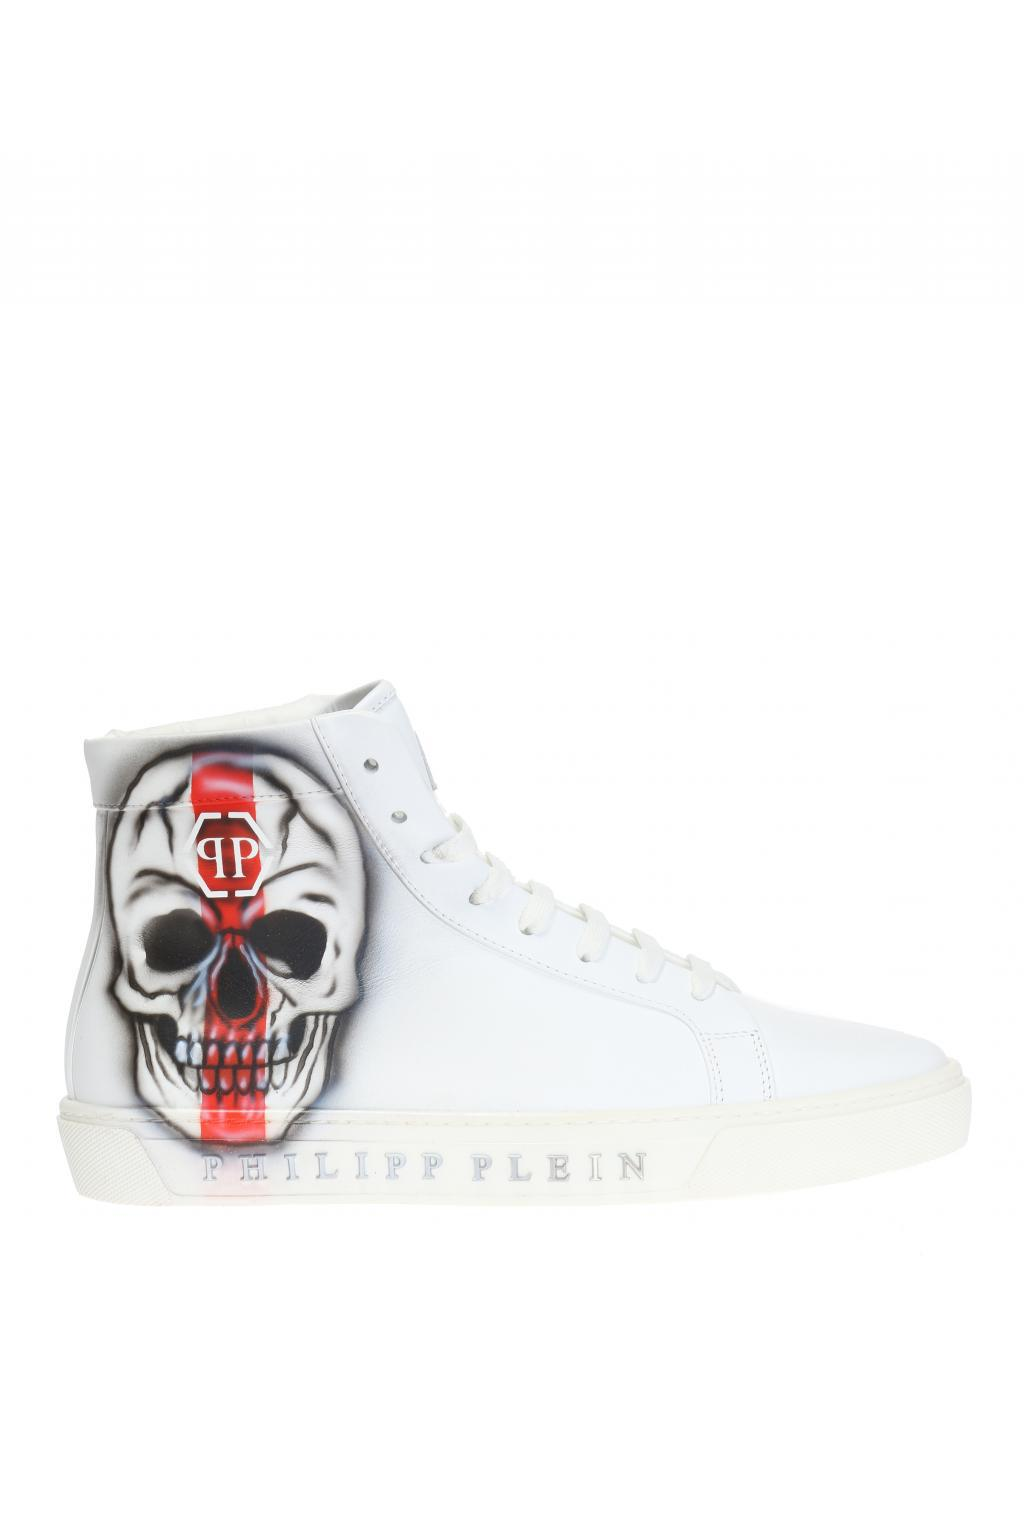 very cheap sale online Philipp Plein Koro Five hi-top sneakers cheap sale low shipping outlet big sale PRsrC2